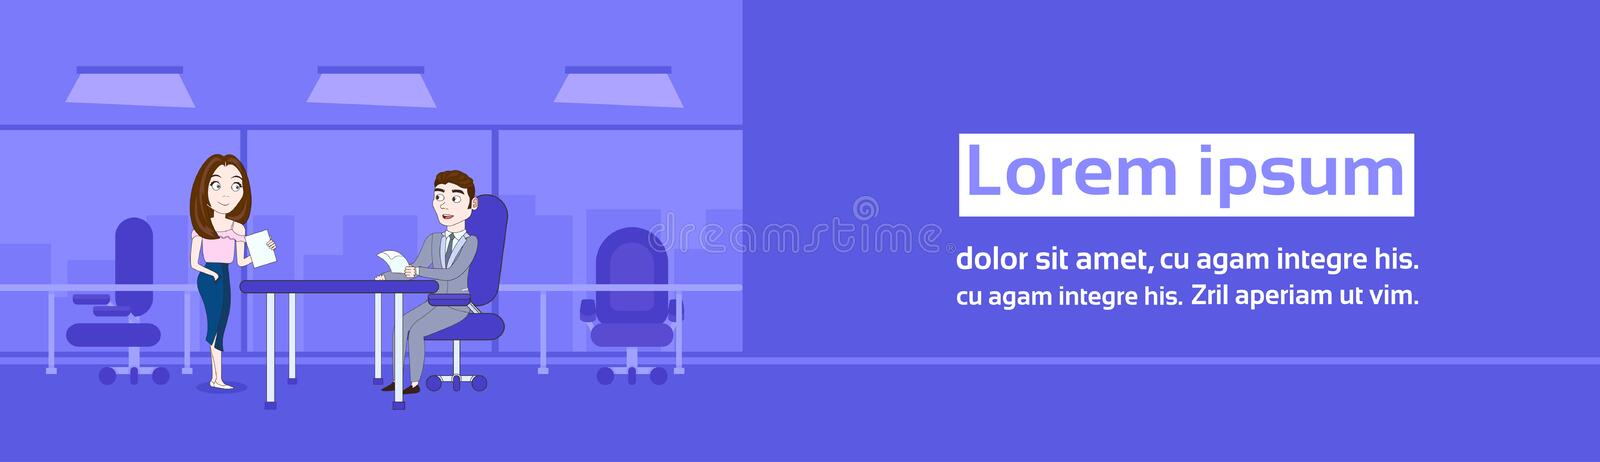 Woman Secretary Giving Boss Sitting At Desk Contracts or Documents Over Silhouette Office Background Horizontal Banner royalty free illustration